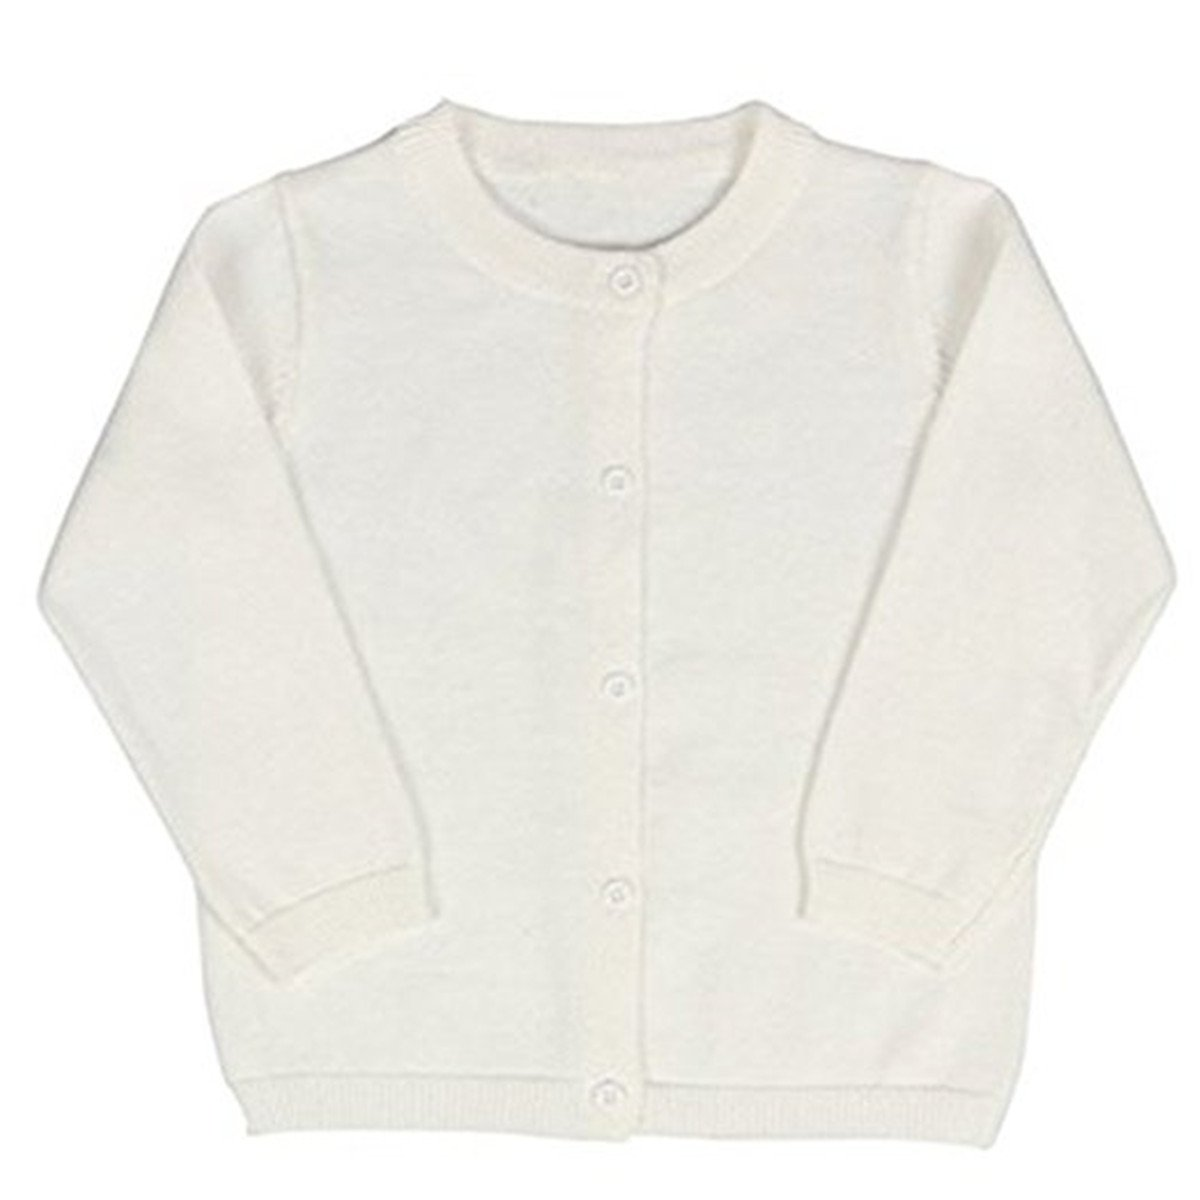 JELEUON Little Girls Cute Crew Neck Button-Down Solid Fine Knit Cardigan Sweaters 4-5 Years